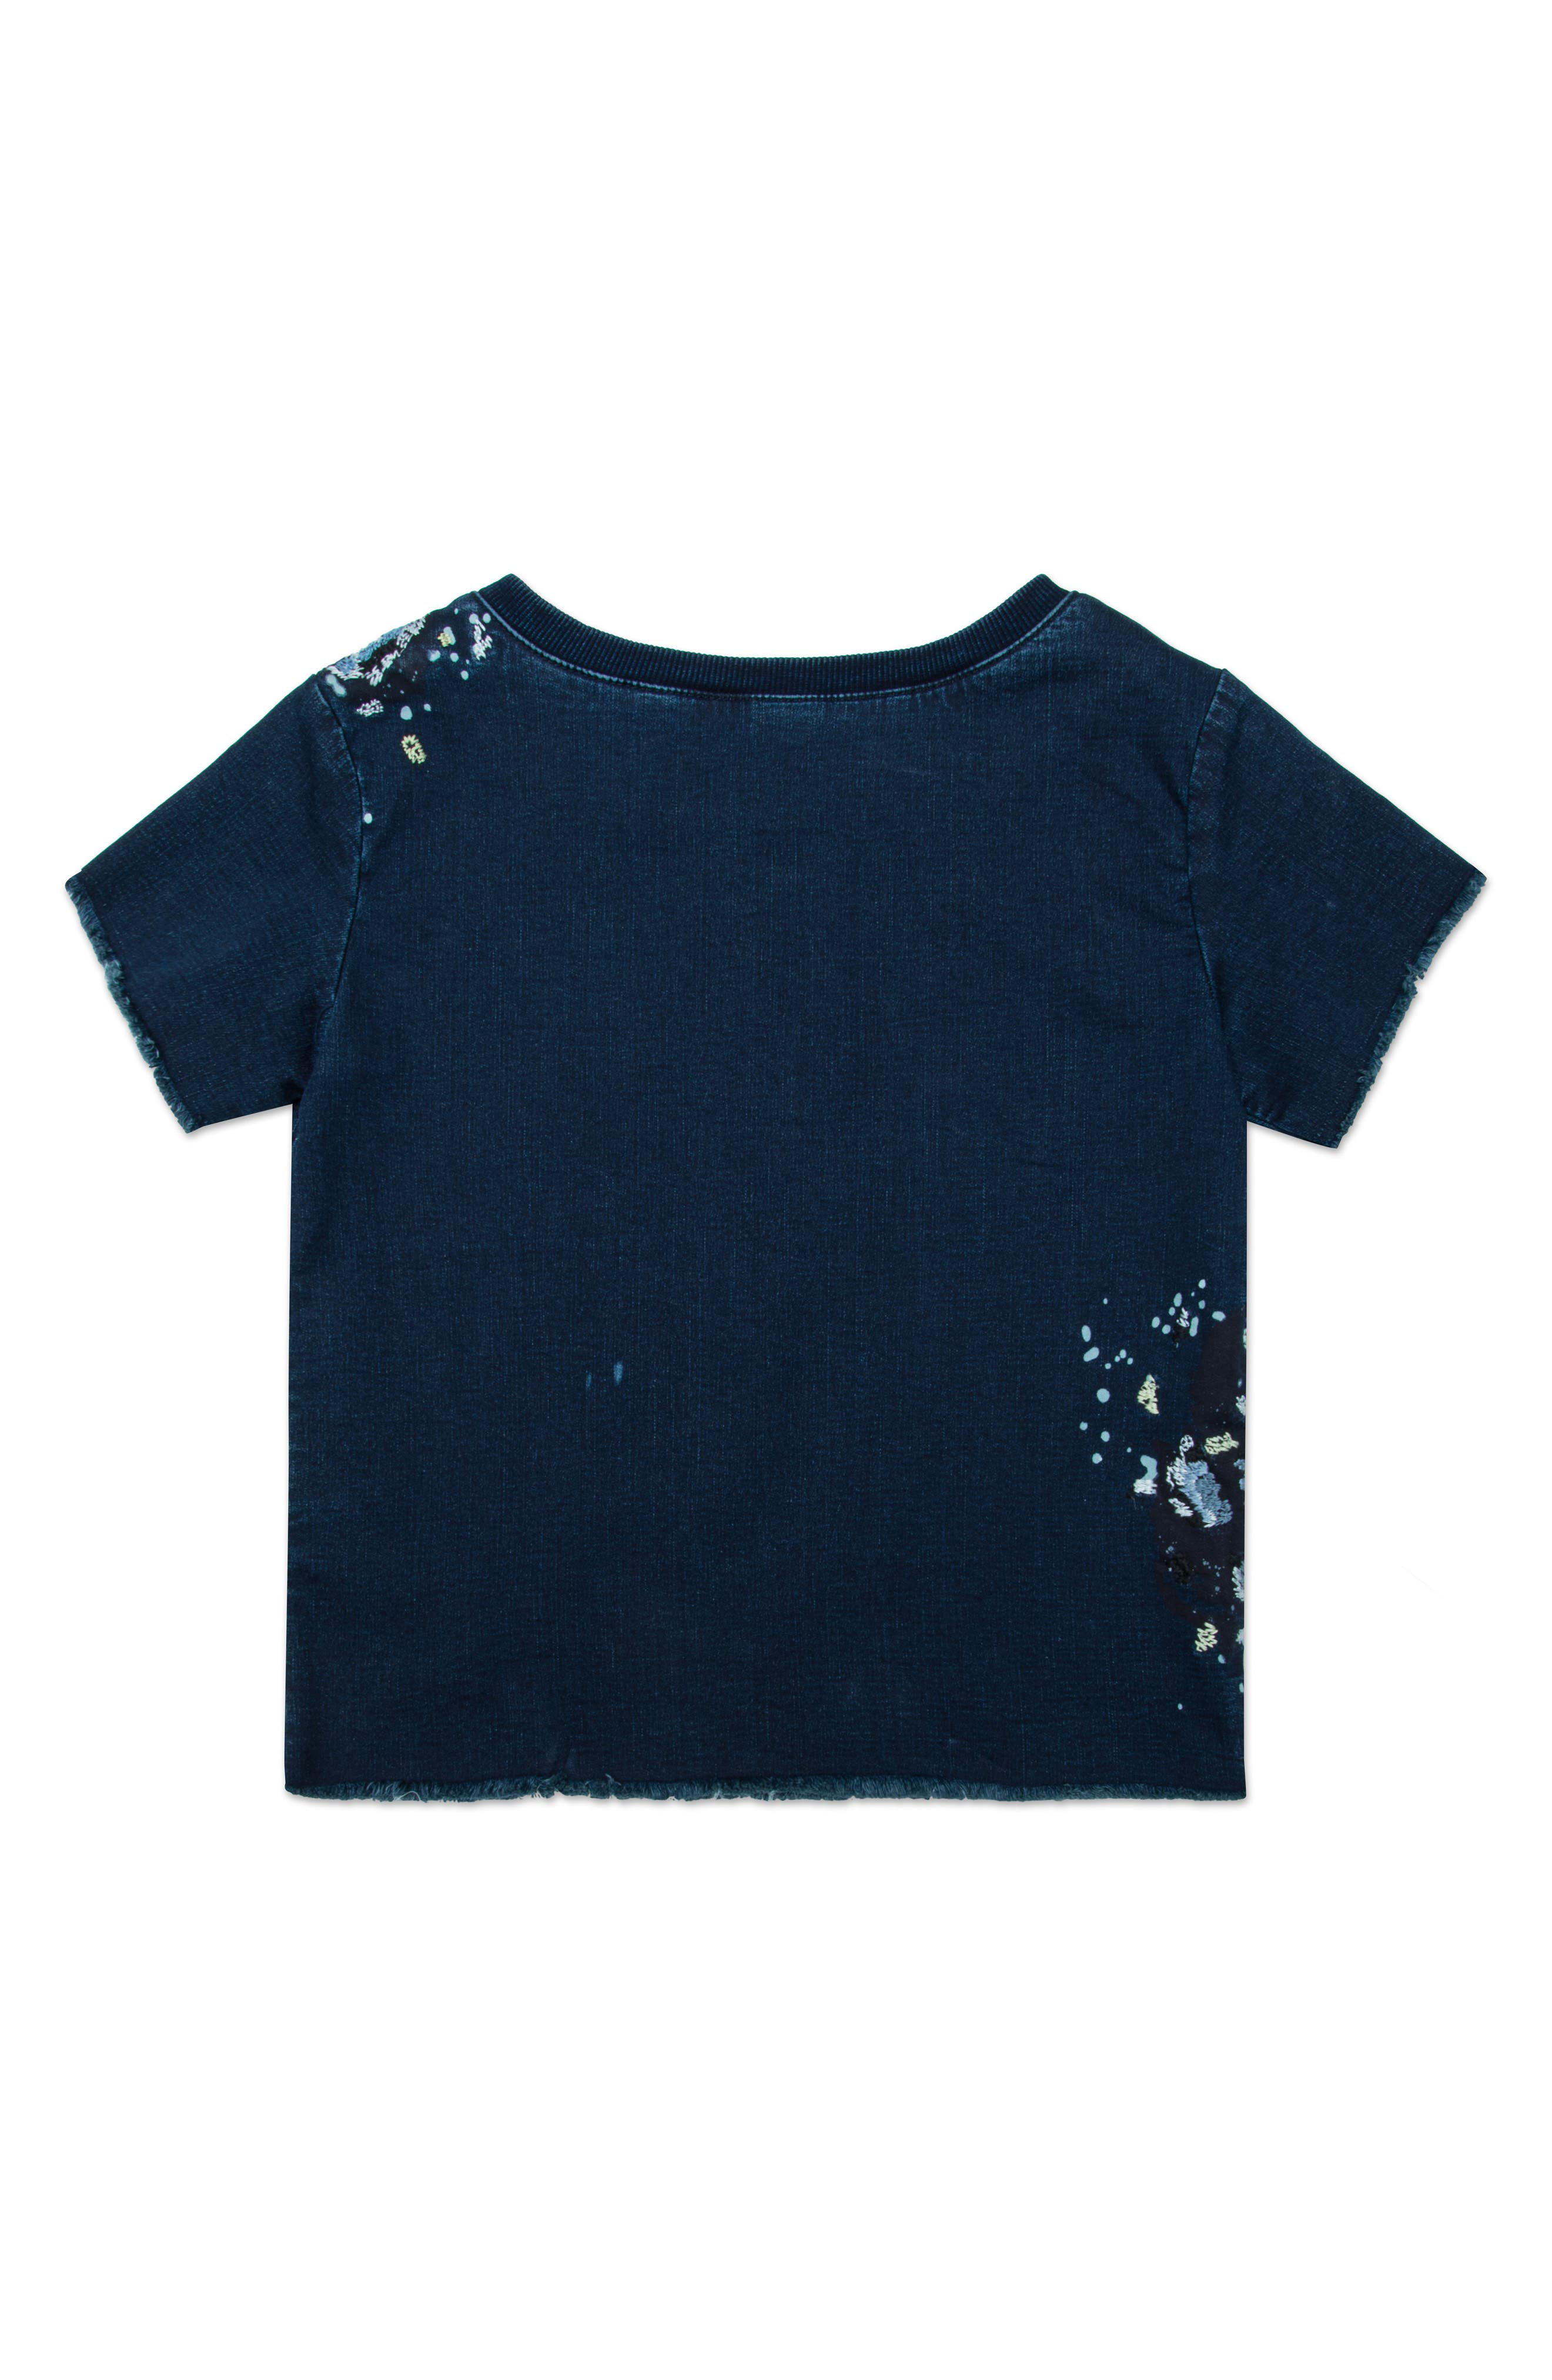 Embroidered Denim Top,                             Alternate thumbnail 2, color,